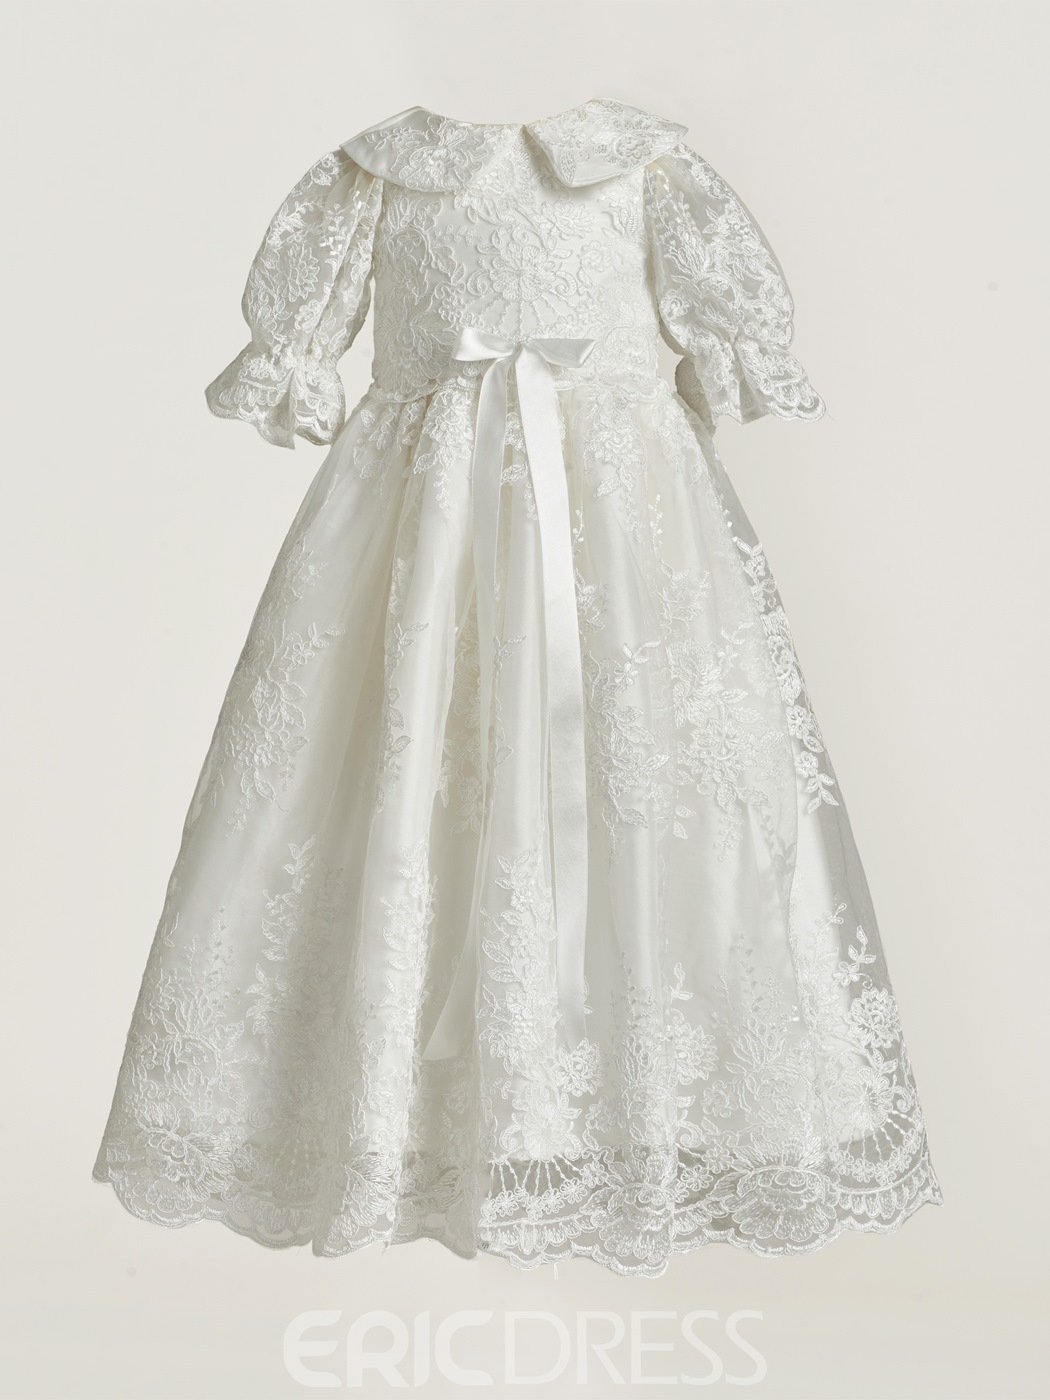 Ericdress Lovely Lace Applique Christening Gown for Girls with Headpiece